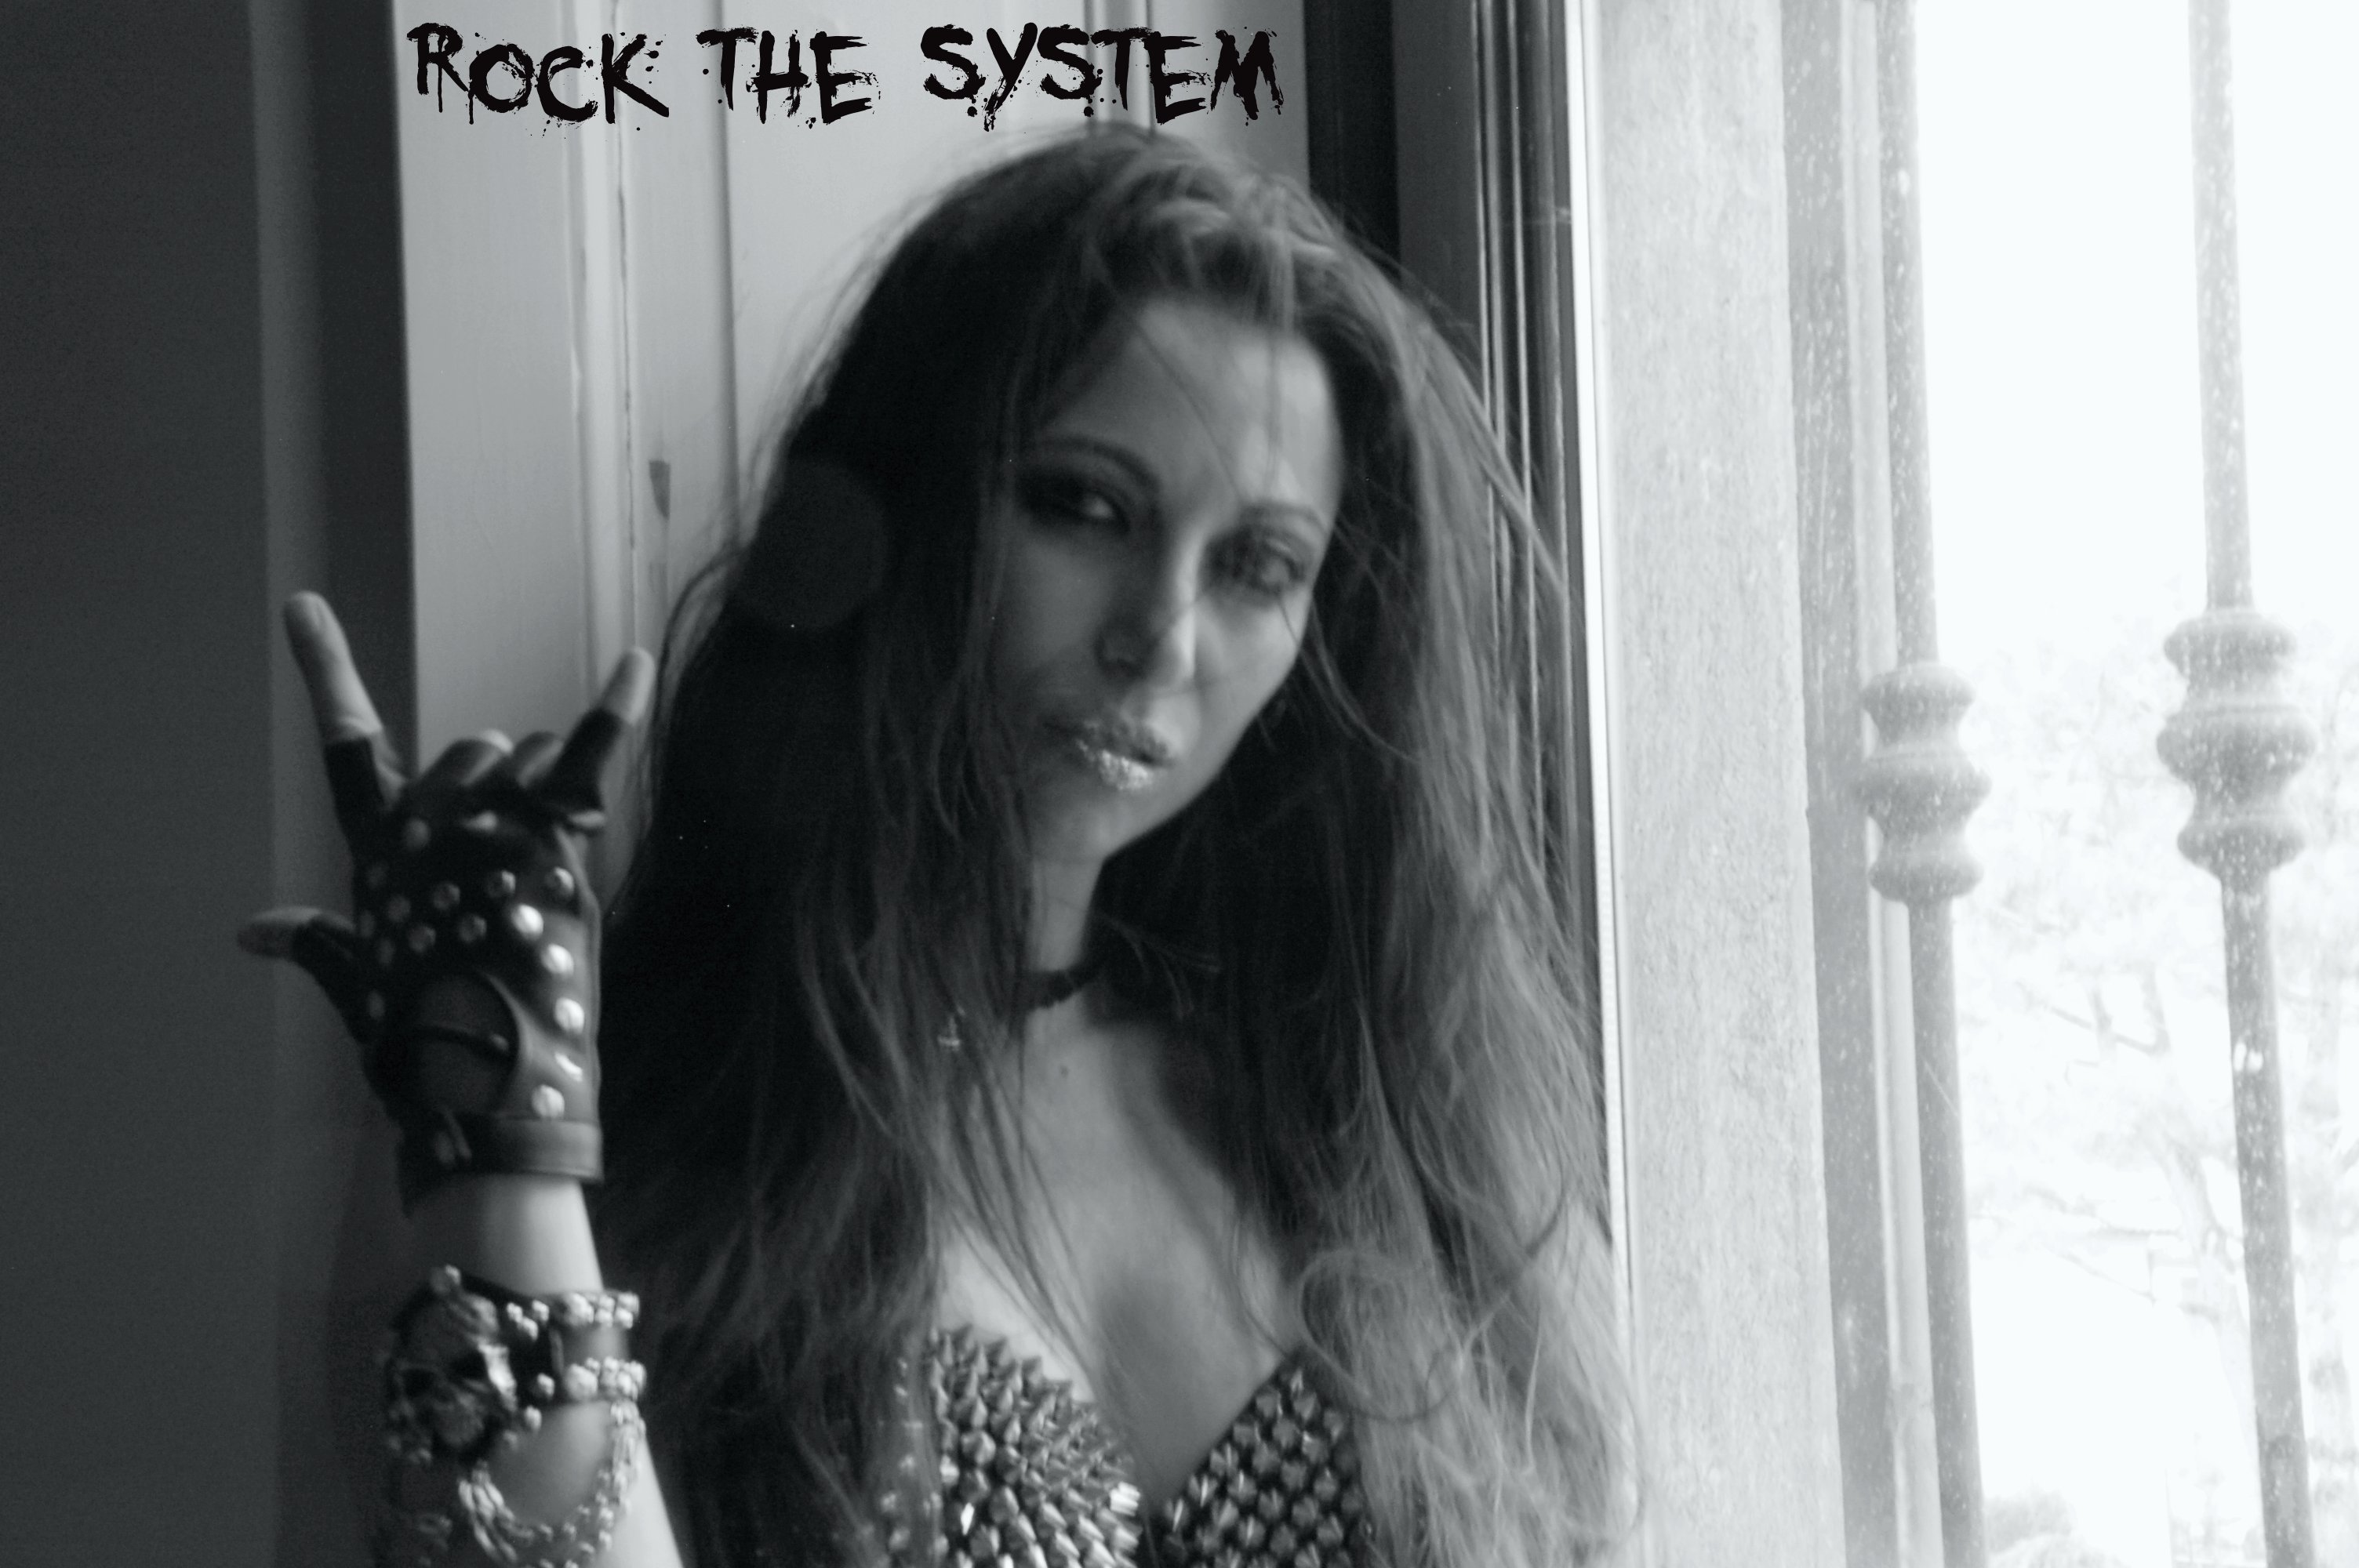 Silversnake Michelle Rock and fuck the system